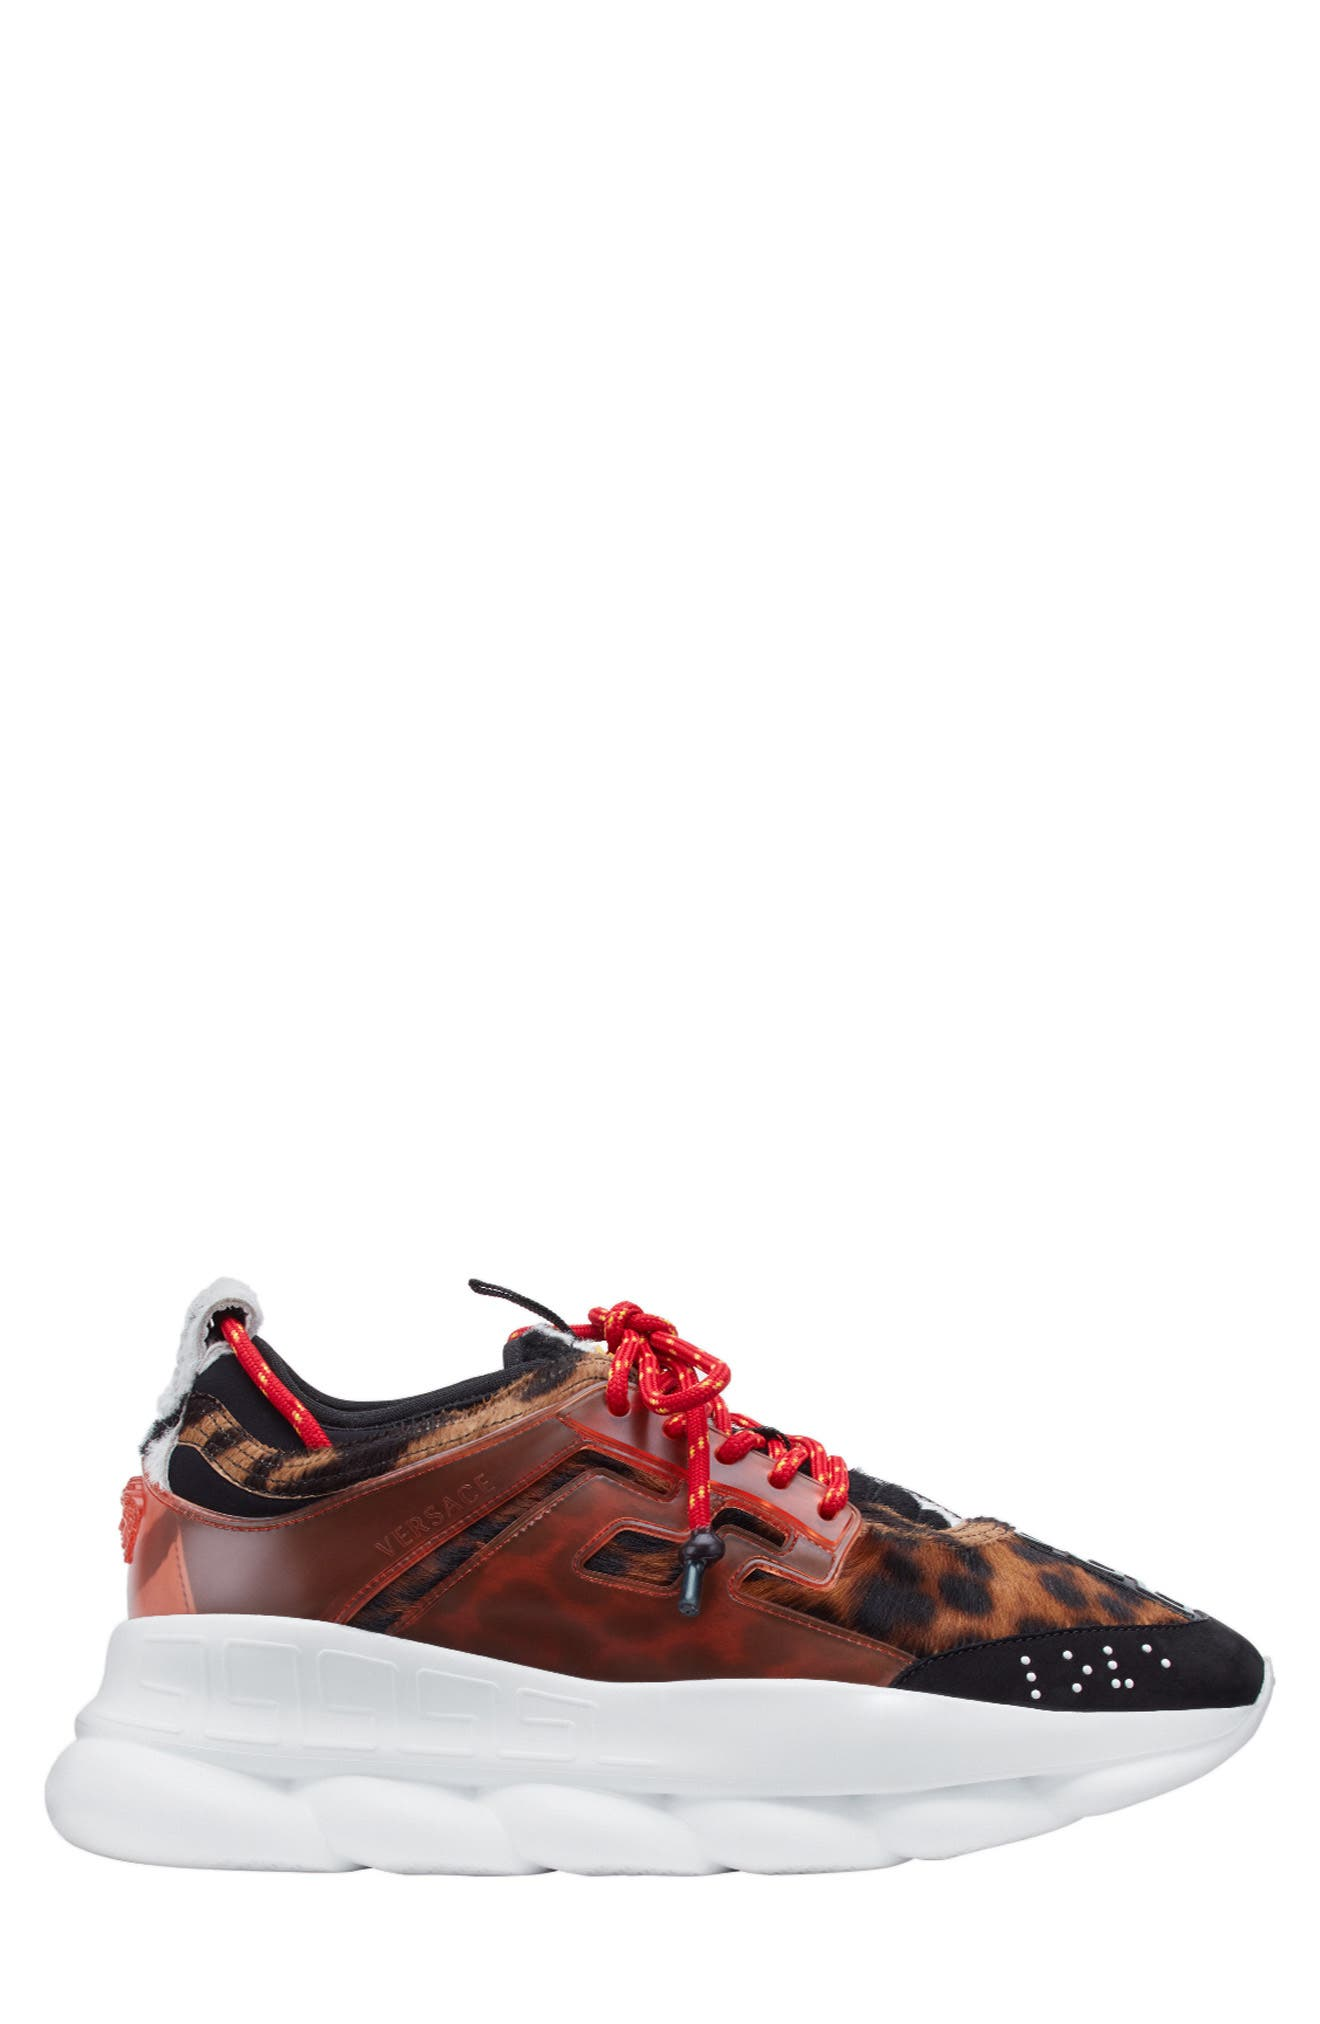 Chain Reaction Sneaker,                             Alternate thumbnail 3, color,                             205